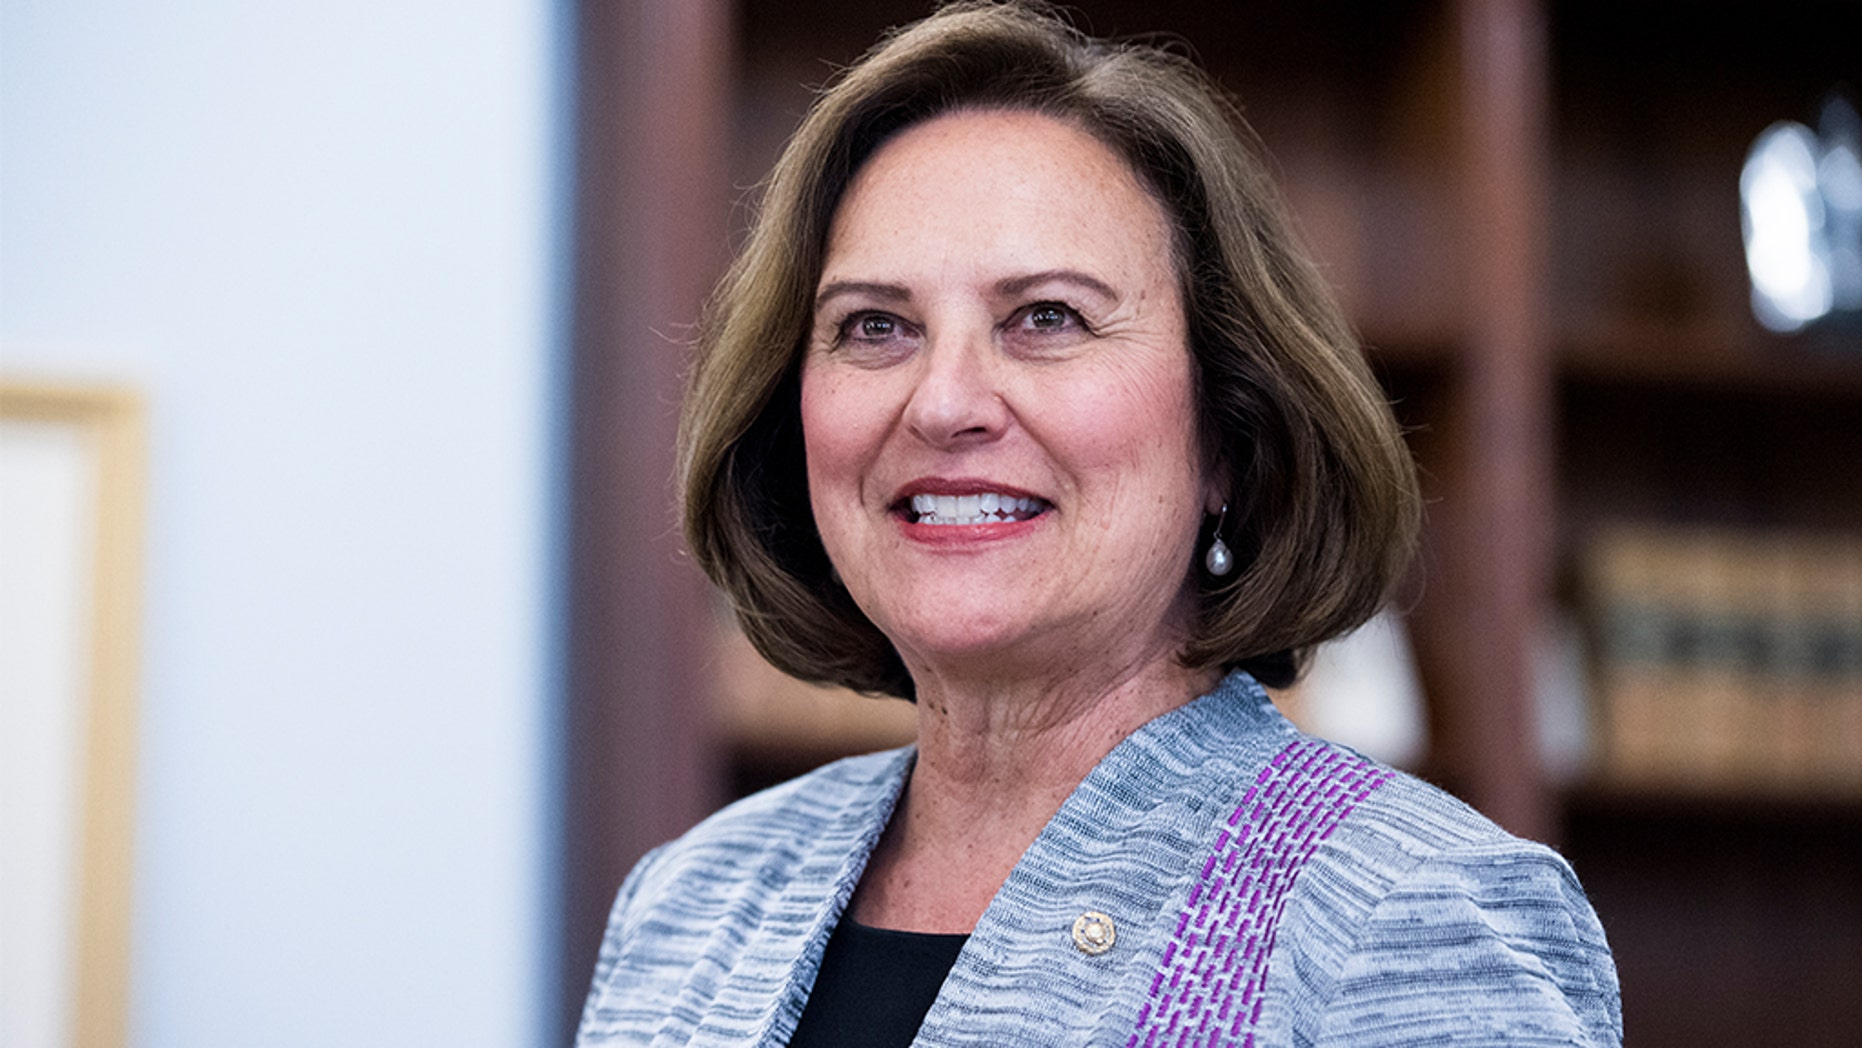 Sen. Deb Fischer, R-Neb., is set to read George Washington's Farewell Address aloud on the floor when the Senate returns to session next Monday afternoon. (Bill Clark/CQ Roll Call)